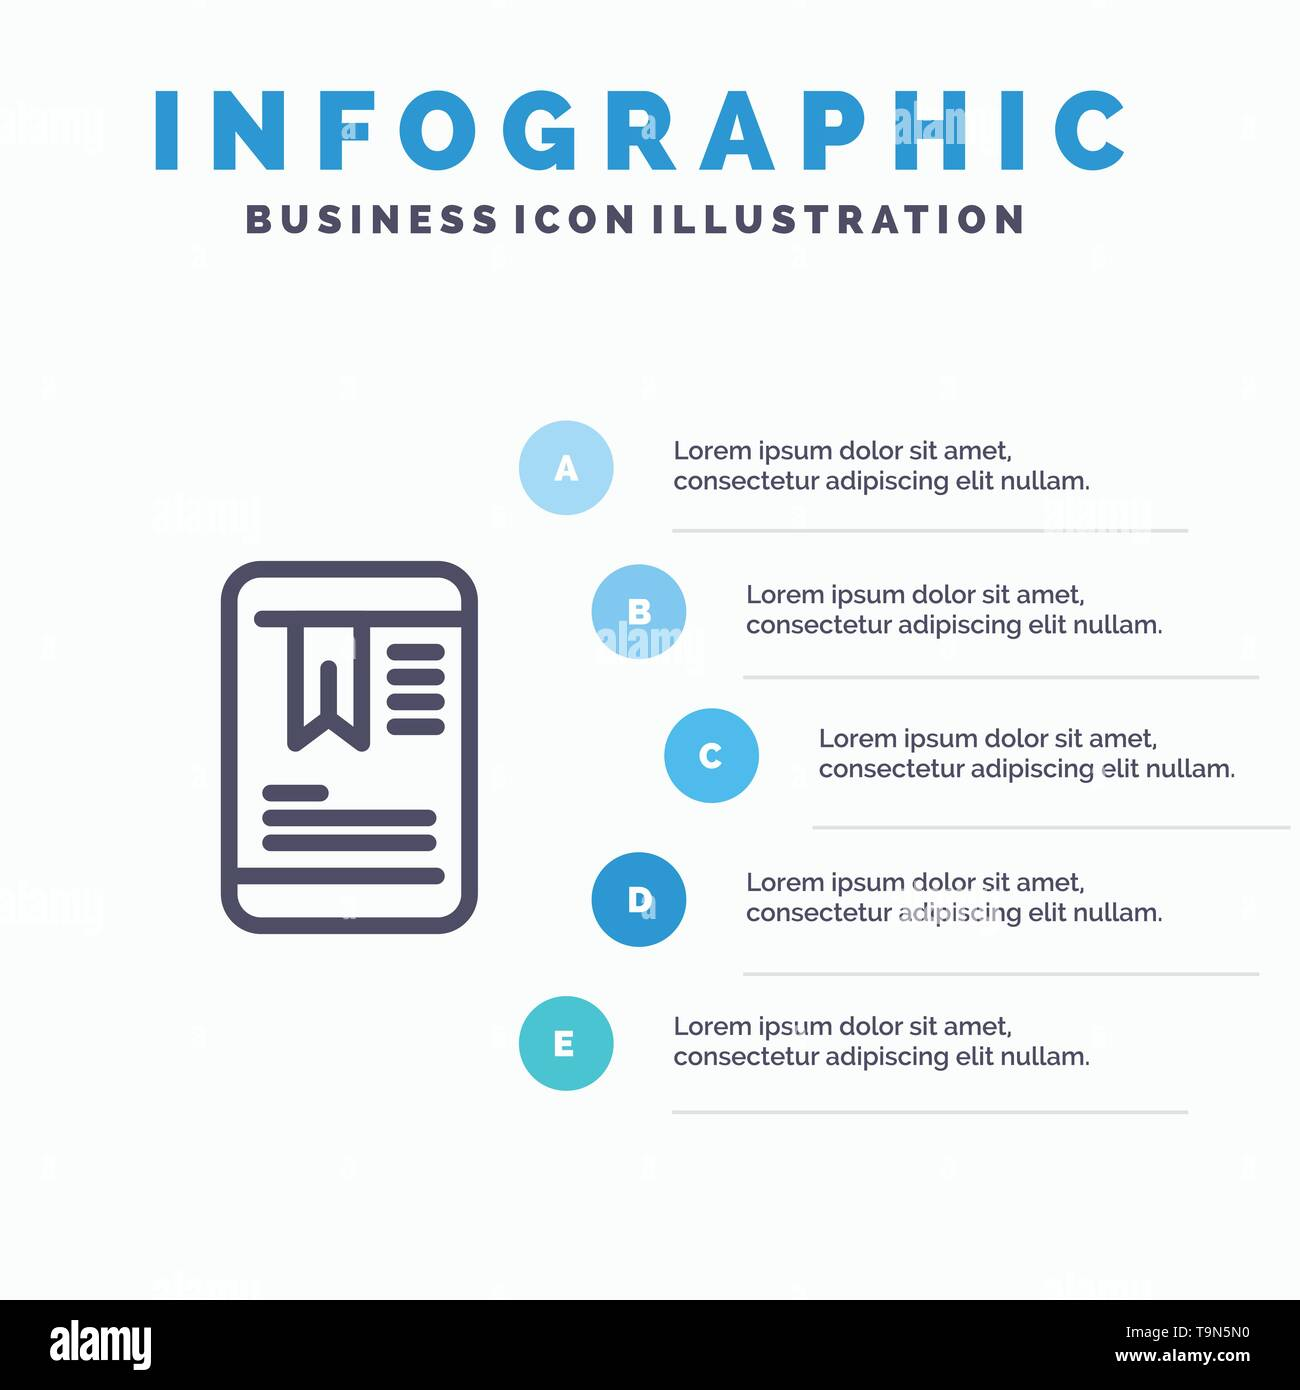 Mobile, Tag, OnEducation Line icon with 5 steps presentation infographics Background - Stock Image